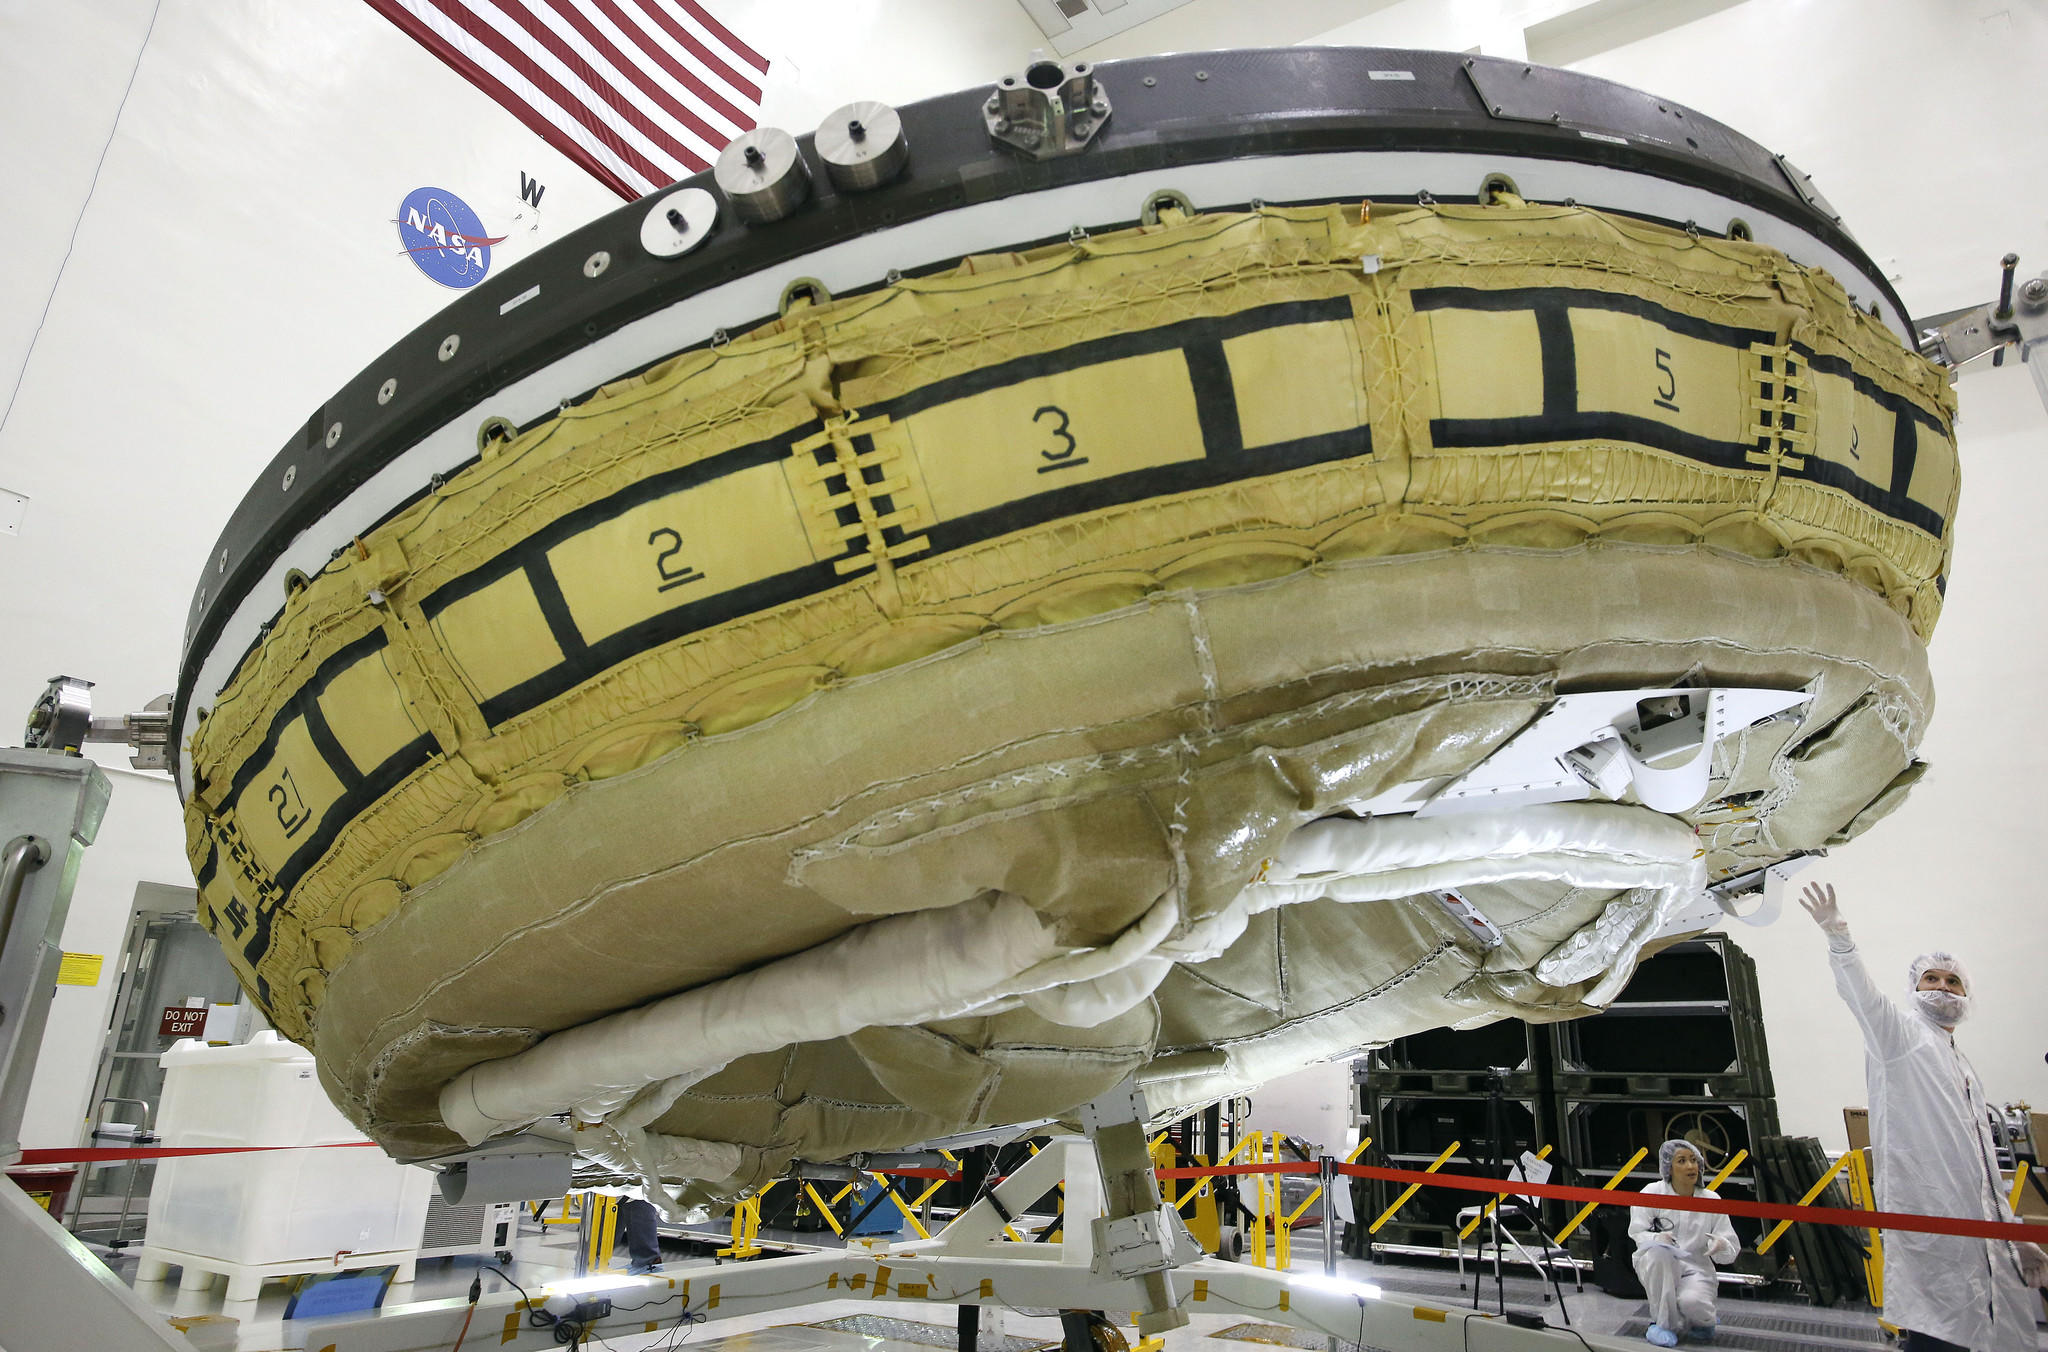 nasa saucer ship shaped design - photo #1